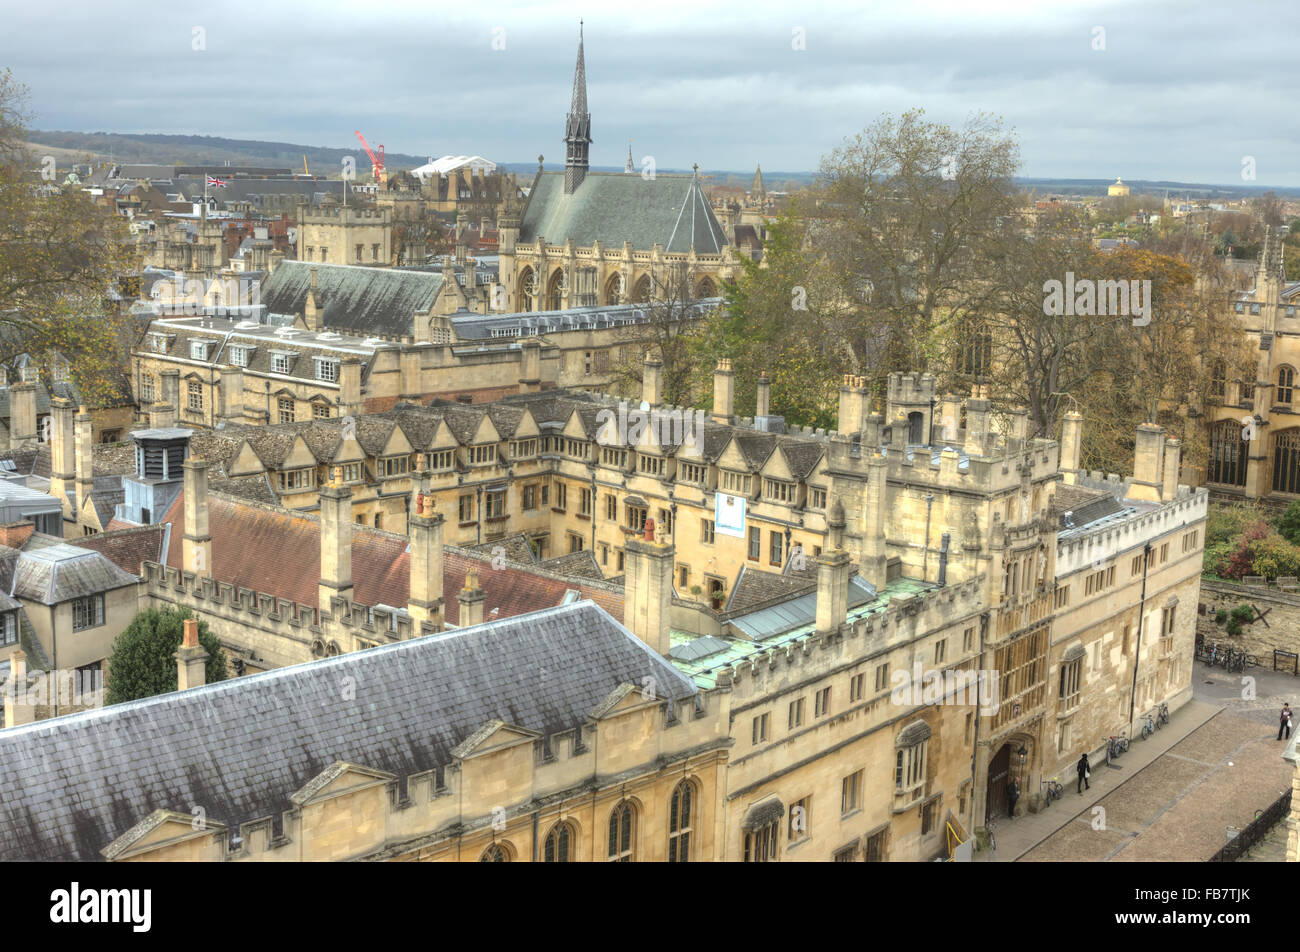 Brasenose college, University of Oxford - Stock Image